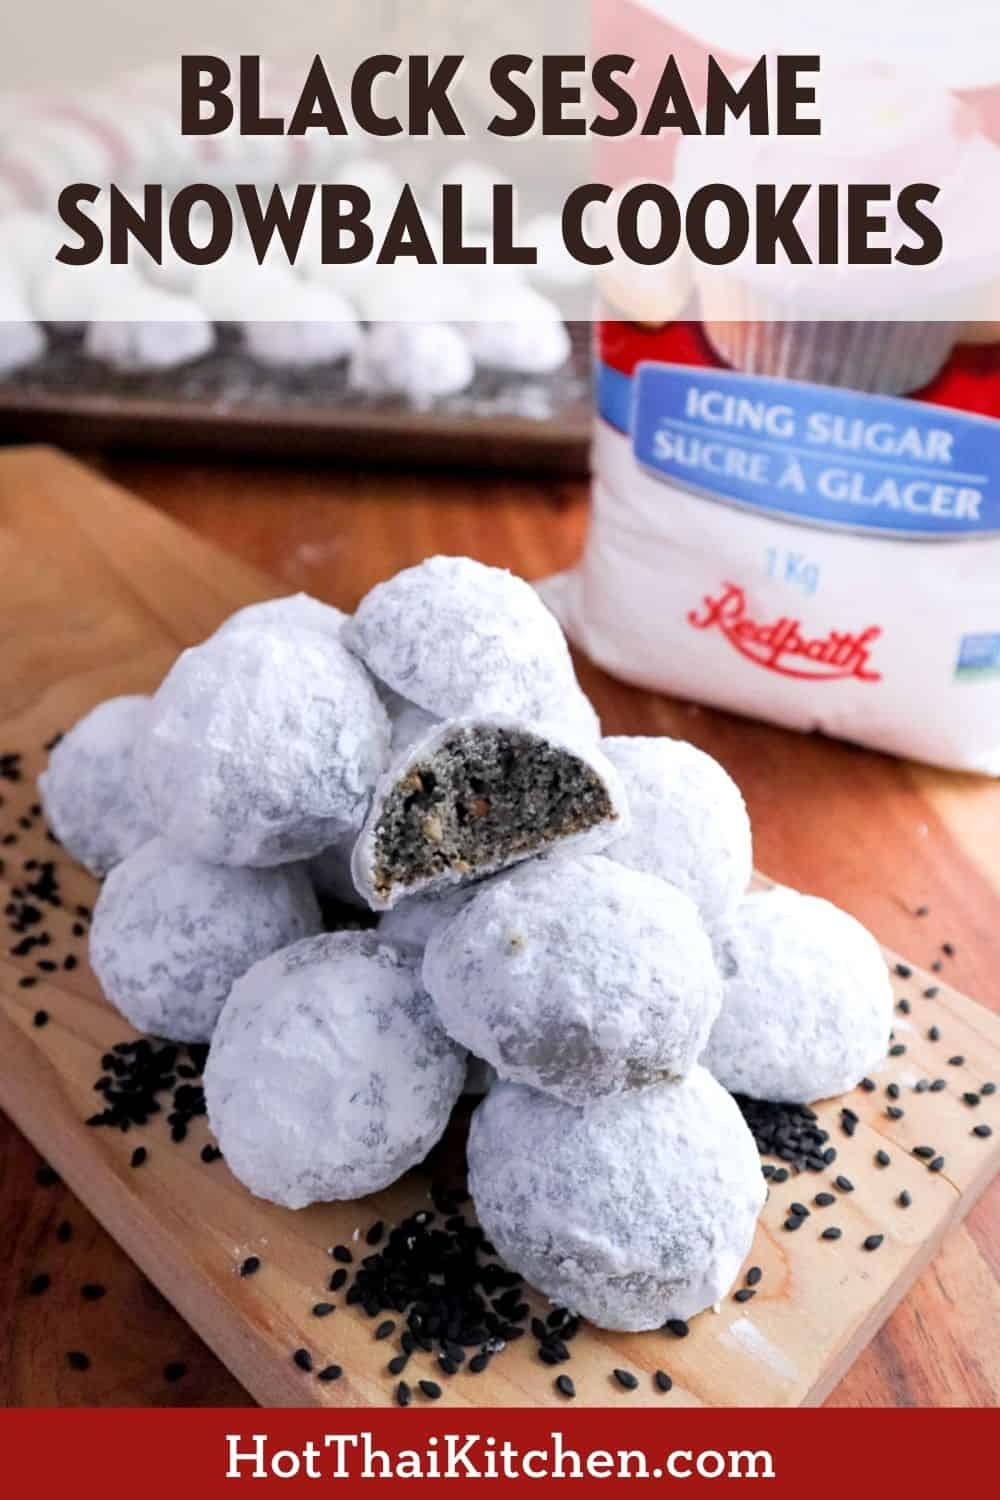 A pinterest-friendly image of a pile of black sesame snowball cookies on a cutting board, with one cookie cut open